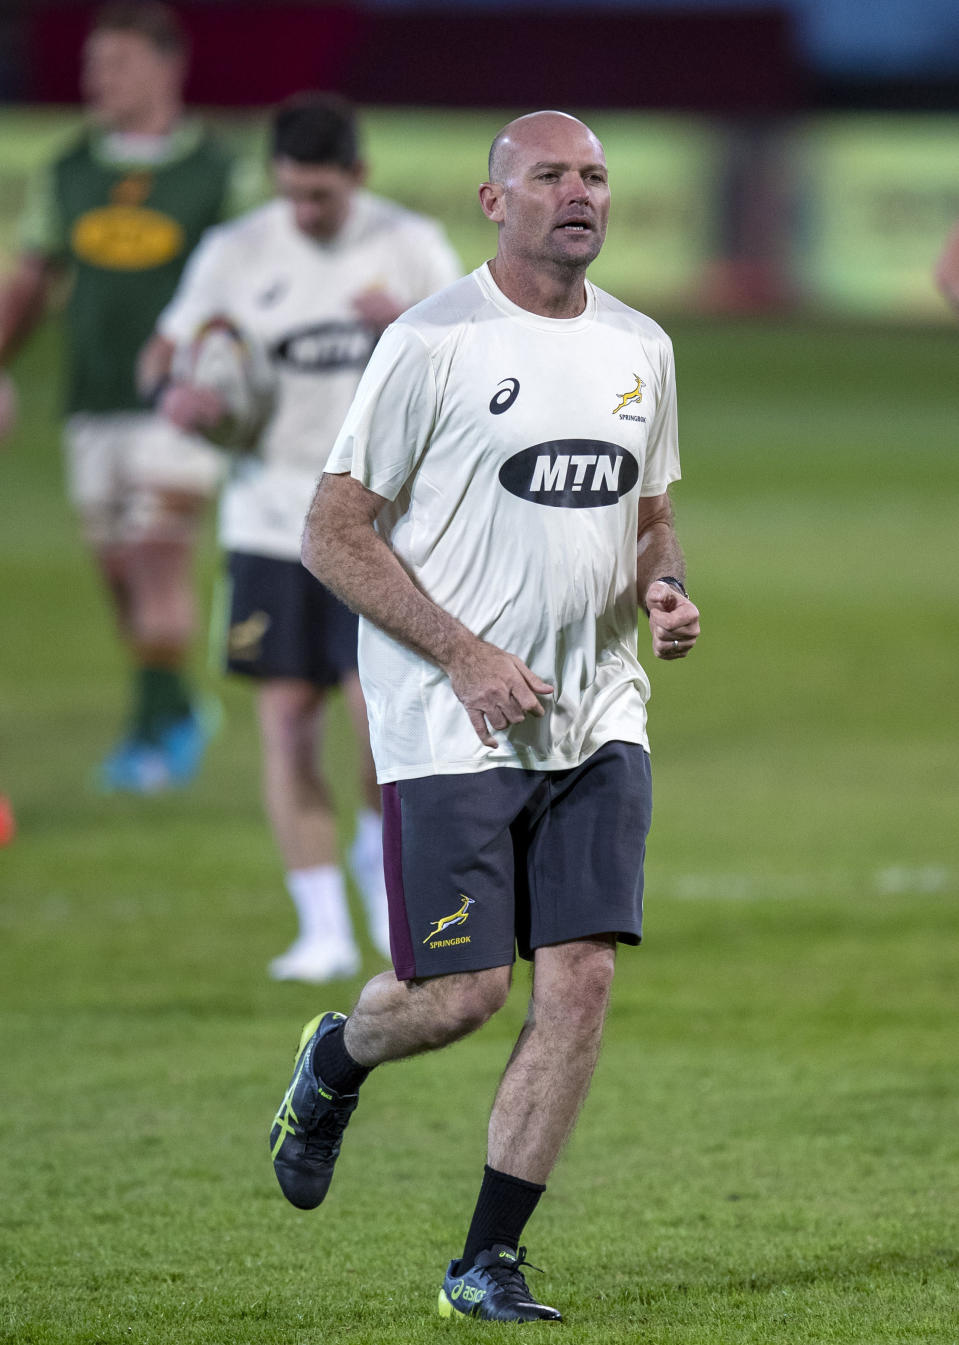 South Africa's head coach Jacques Nienaber runs as his team warms up before the start of the first test rugby match between South Africa and Georgia at Loftus Versfeld in Pretoria, South Africa, Friday, July 2, 2021. (AP Photo/Themba Hadebe)